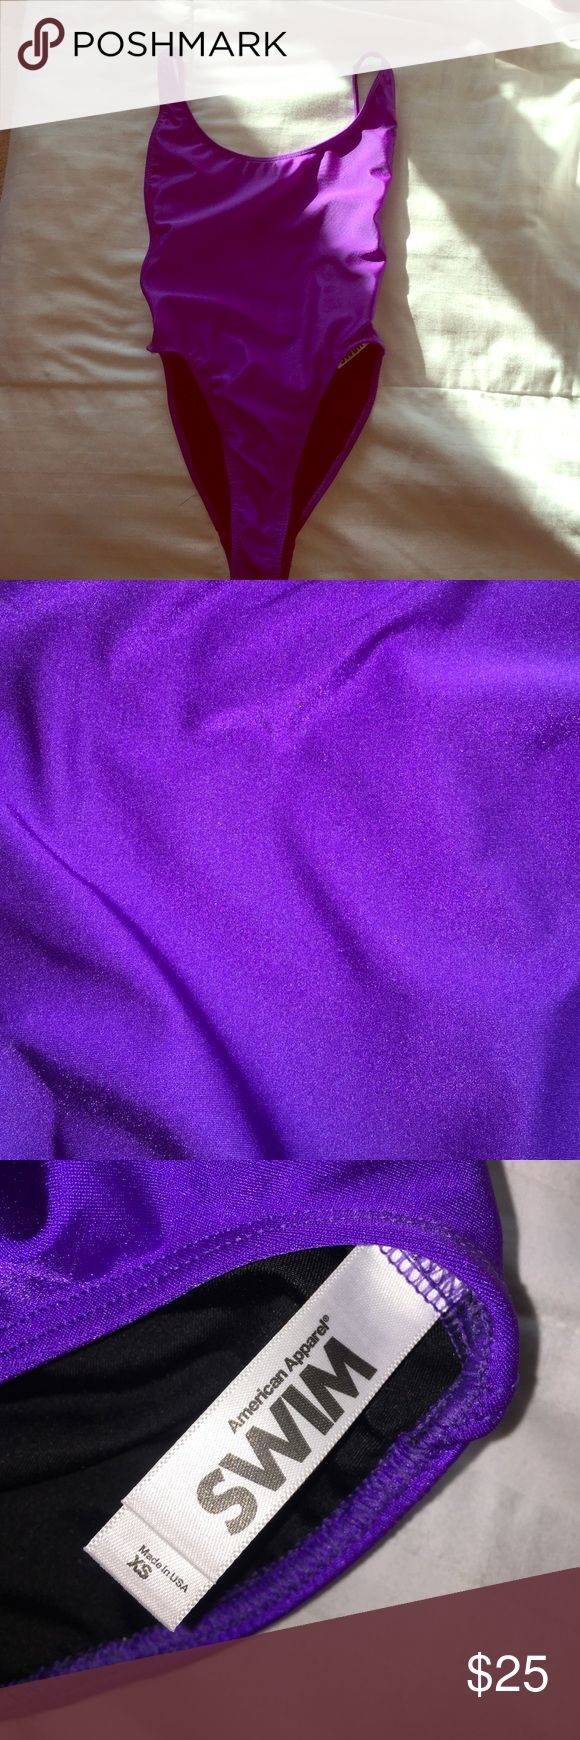 Bright purple one piece swimsuit Super fun color, high cut, low back, so cute on!! Never worn, perfect condition! Just never have the chance to wear it! American Apparel Swim One Pieces